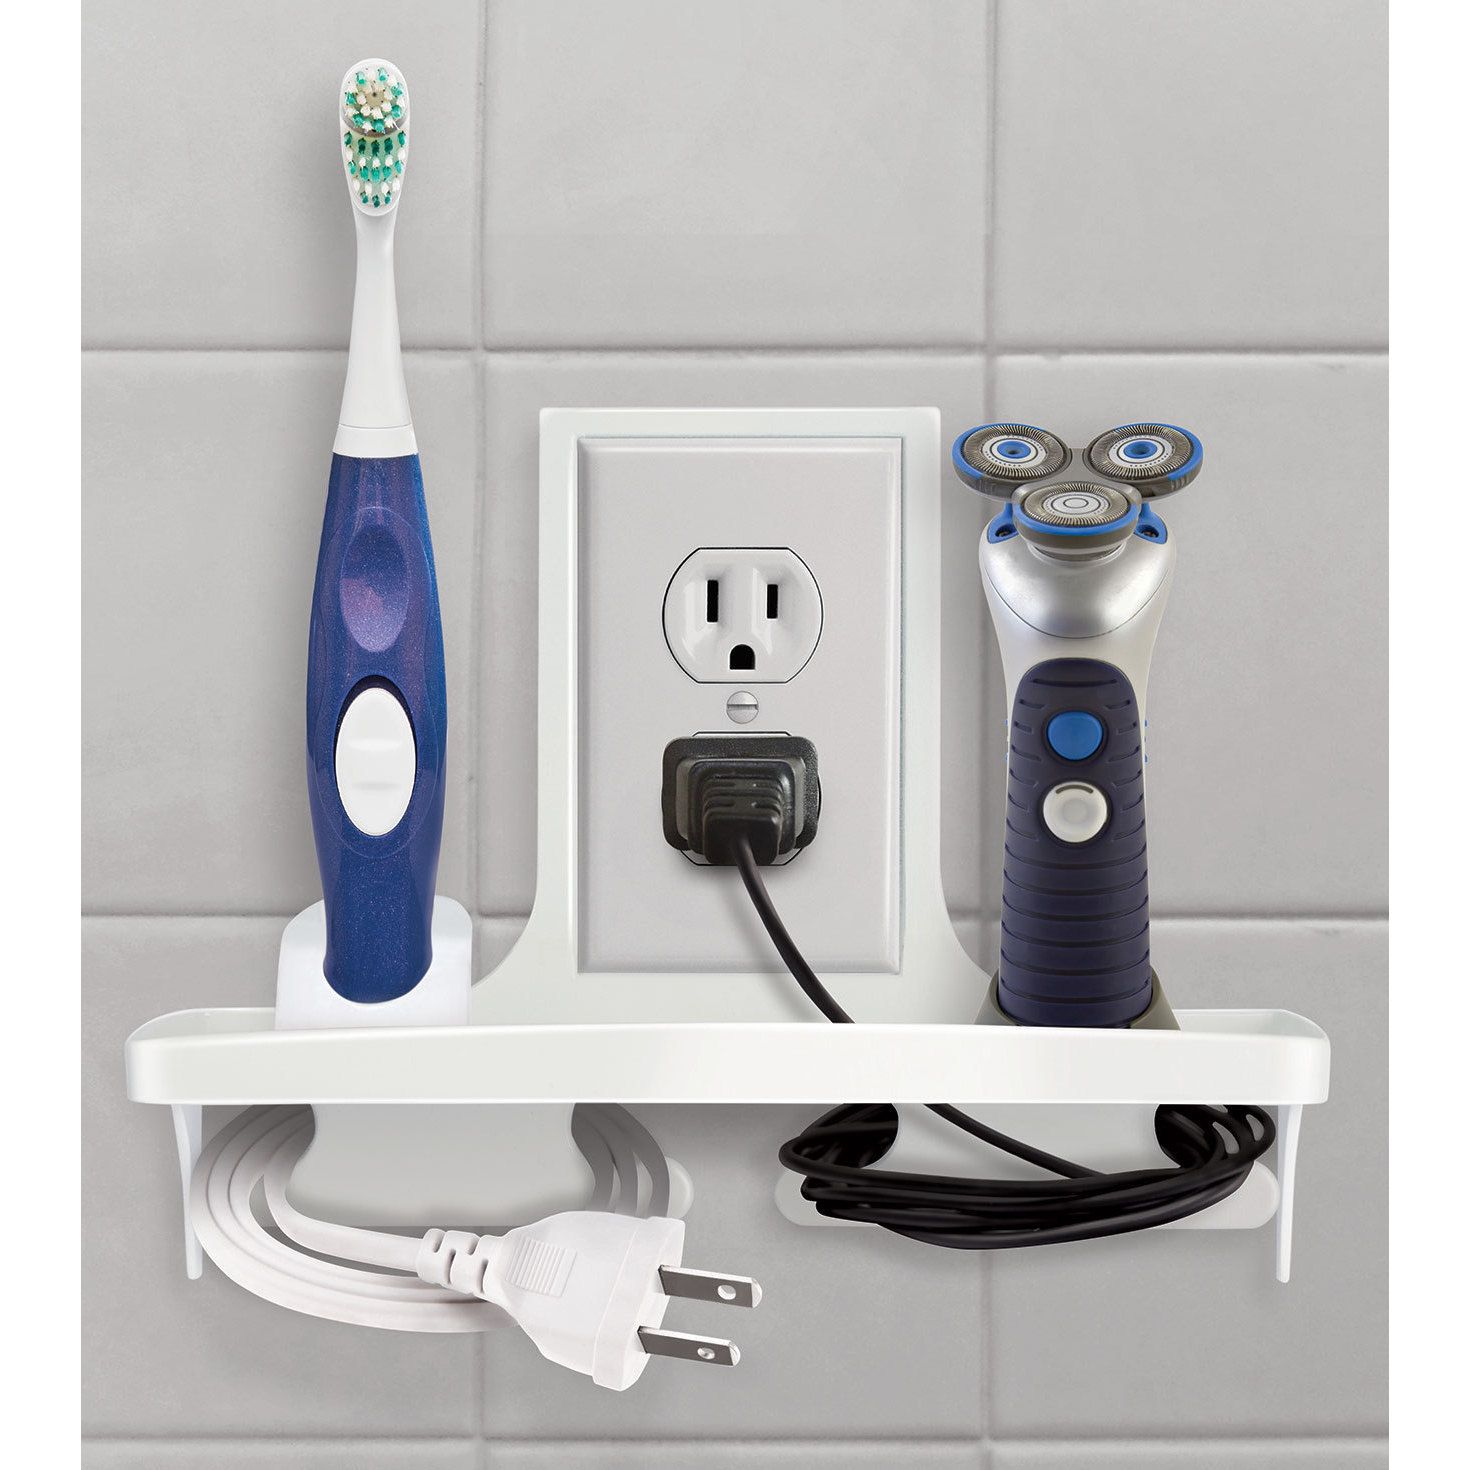 Bathroom Wall Organizers wall outlet organizerideaworksideaworks | wall outlet